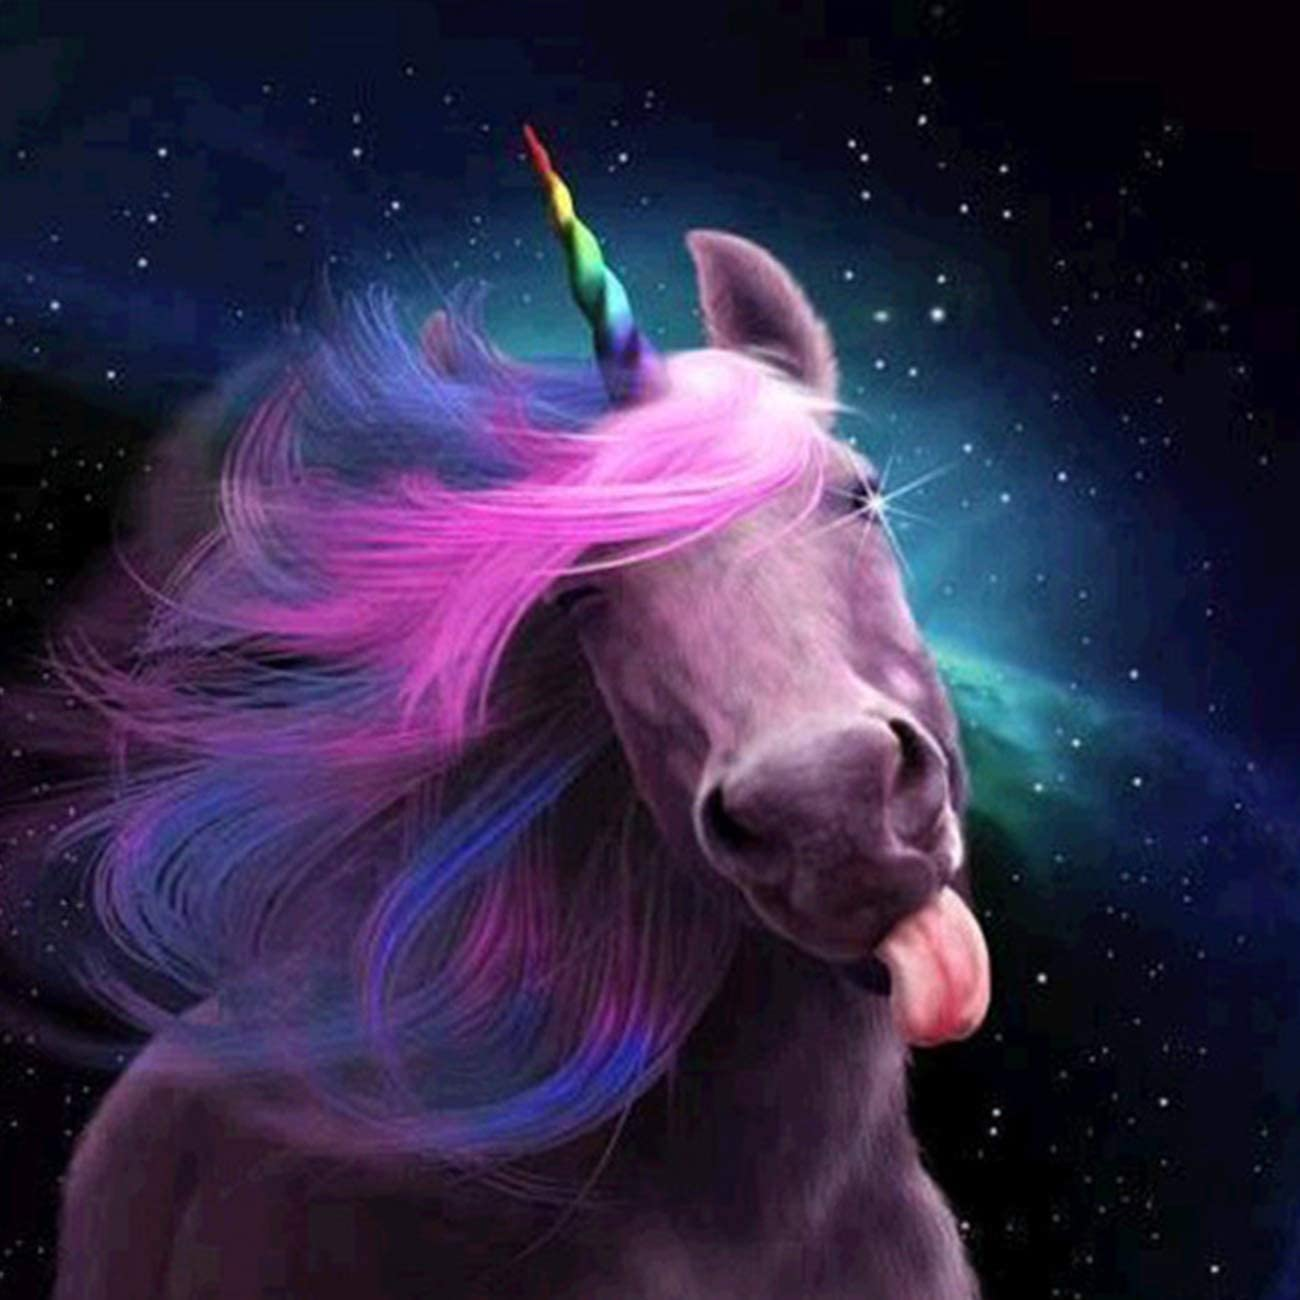 DIY Unicorns Paint with Diamonds Art Rhinestone Embroidery Decor 20X25inch SKRYUIE 5D Diamond Painting Colorful Unicorns Full Drill by Number Kits for Kids Adults